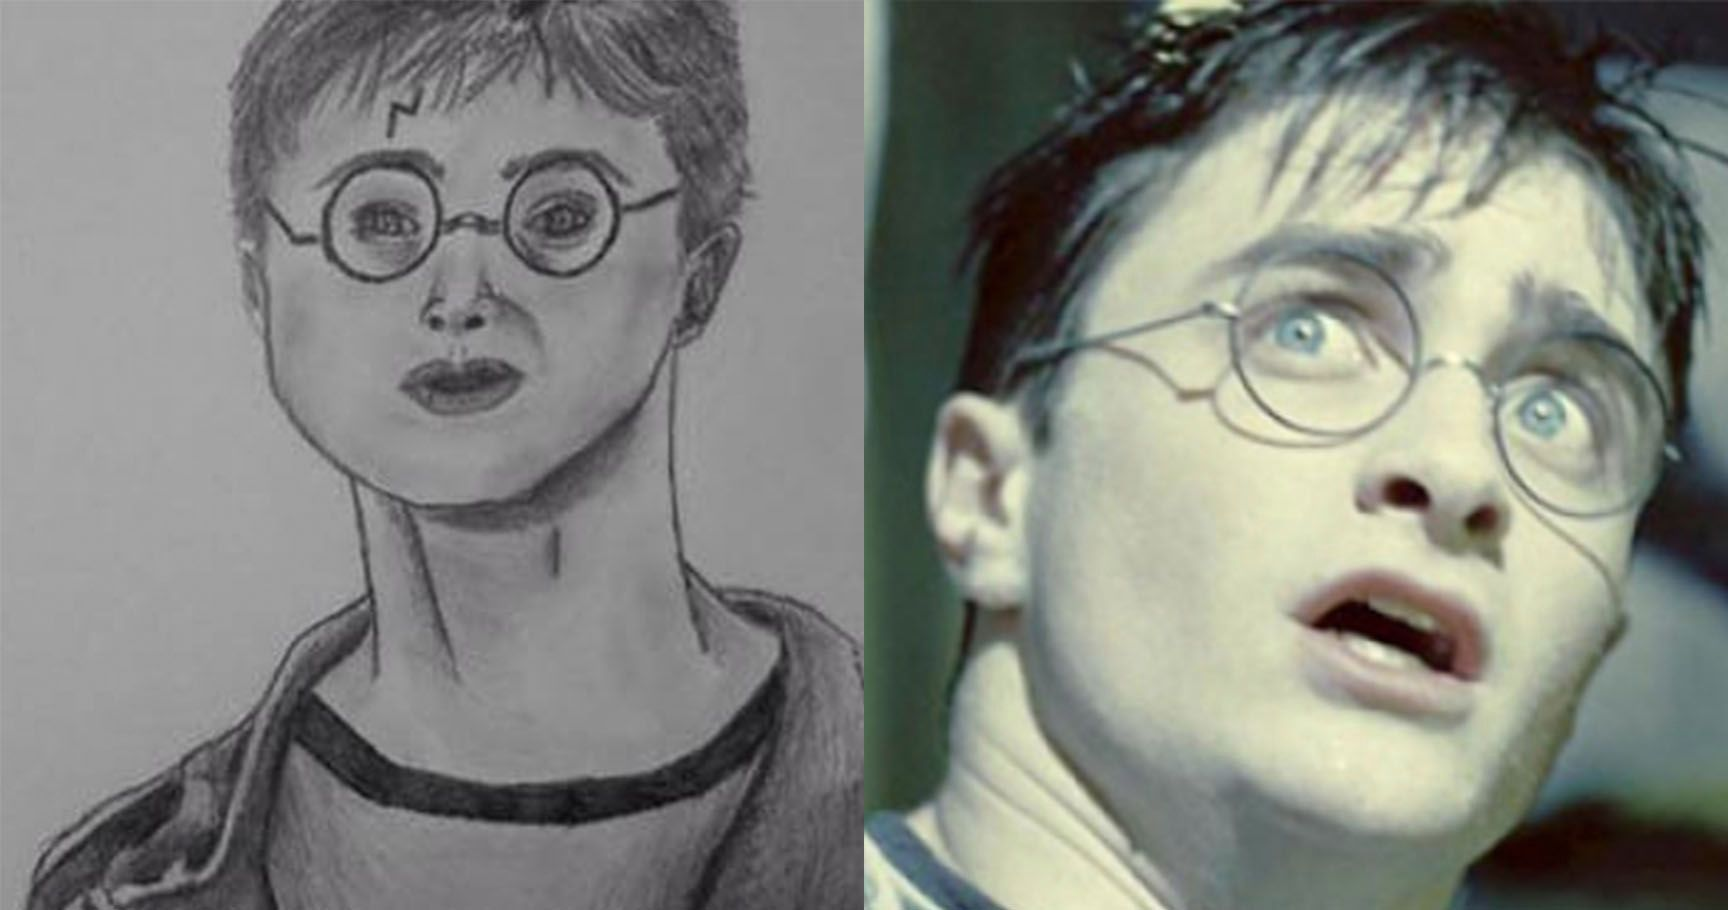 15 Disastrous Pieces Of Fan Art That Belong In A Museum Of Nightmares